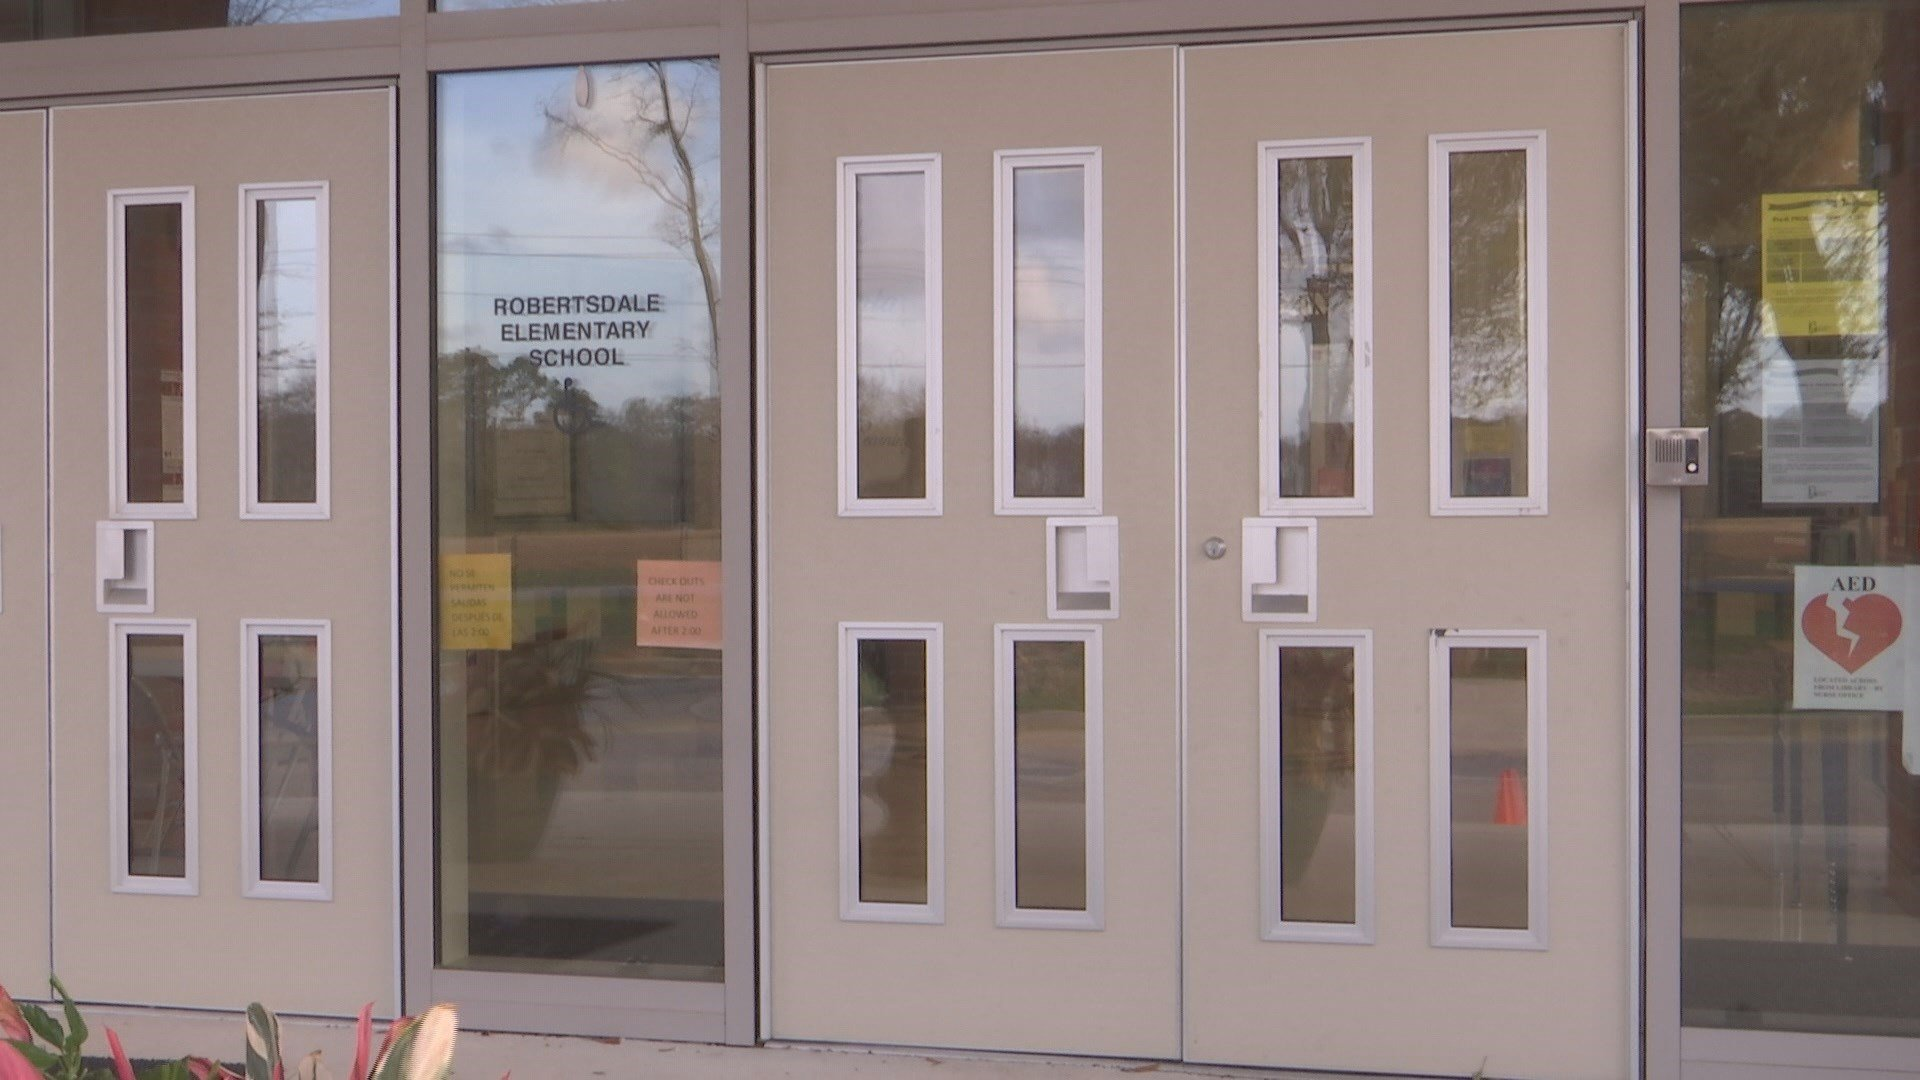 A few schools, like Robertsdale Elementary, already have buzzer systems. Photo: FOX10 News.